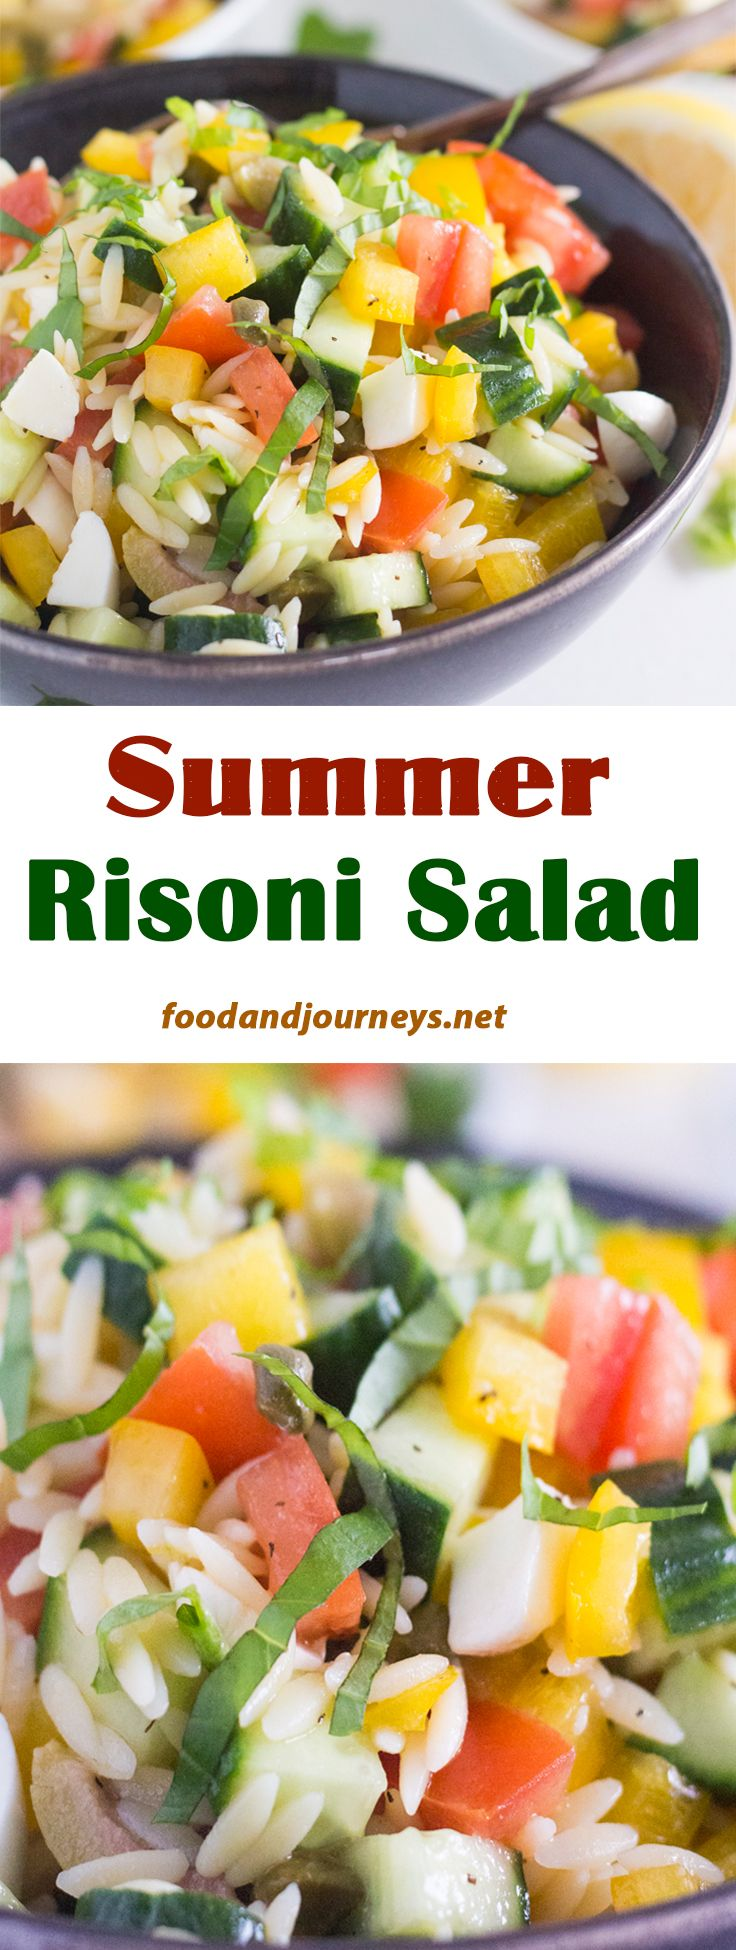 Enjoy this deliciously healthy salad as an appetizer, a side dish or as the main dish!